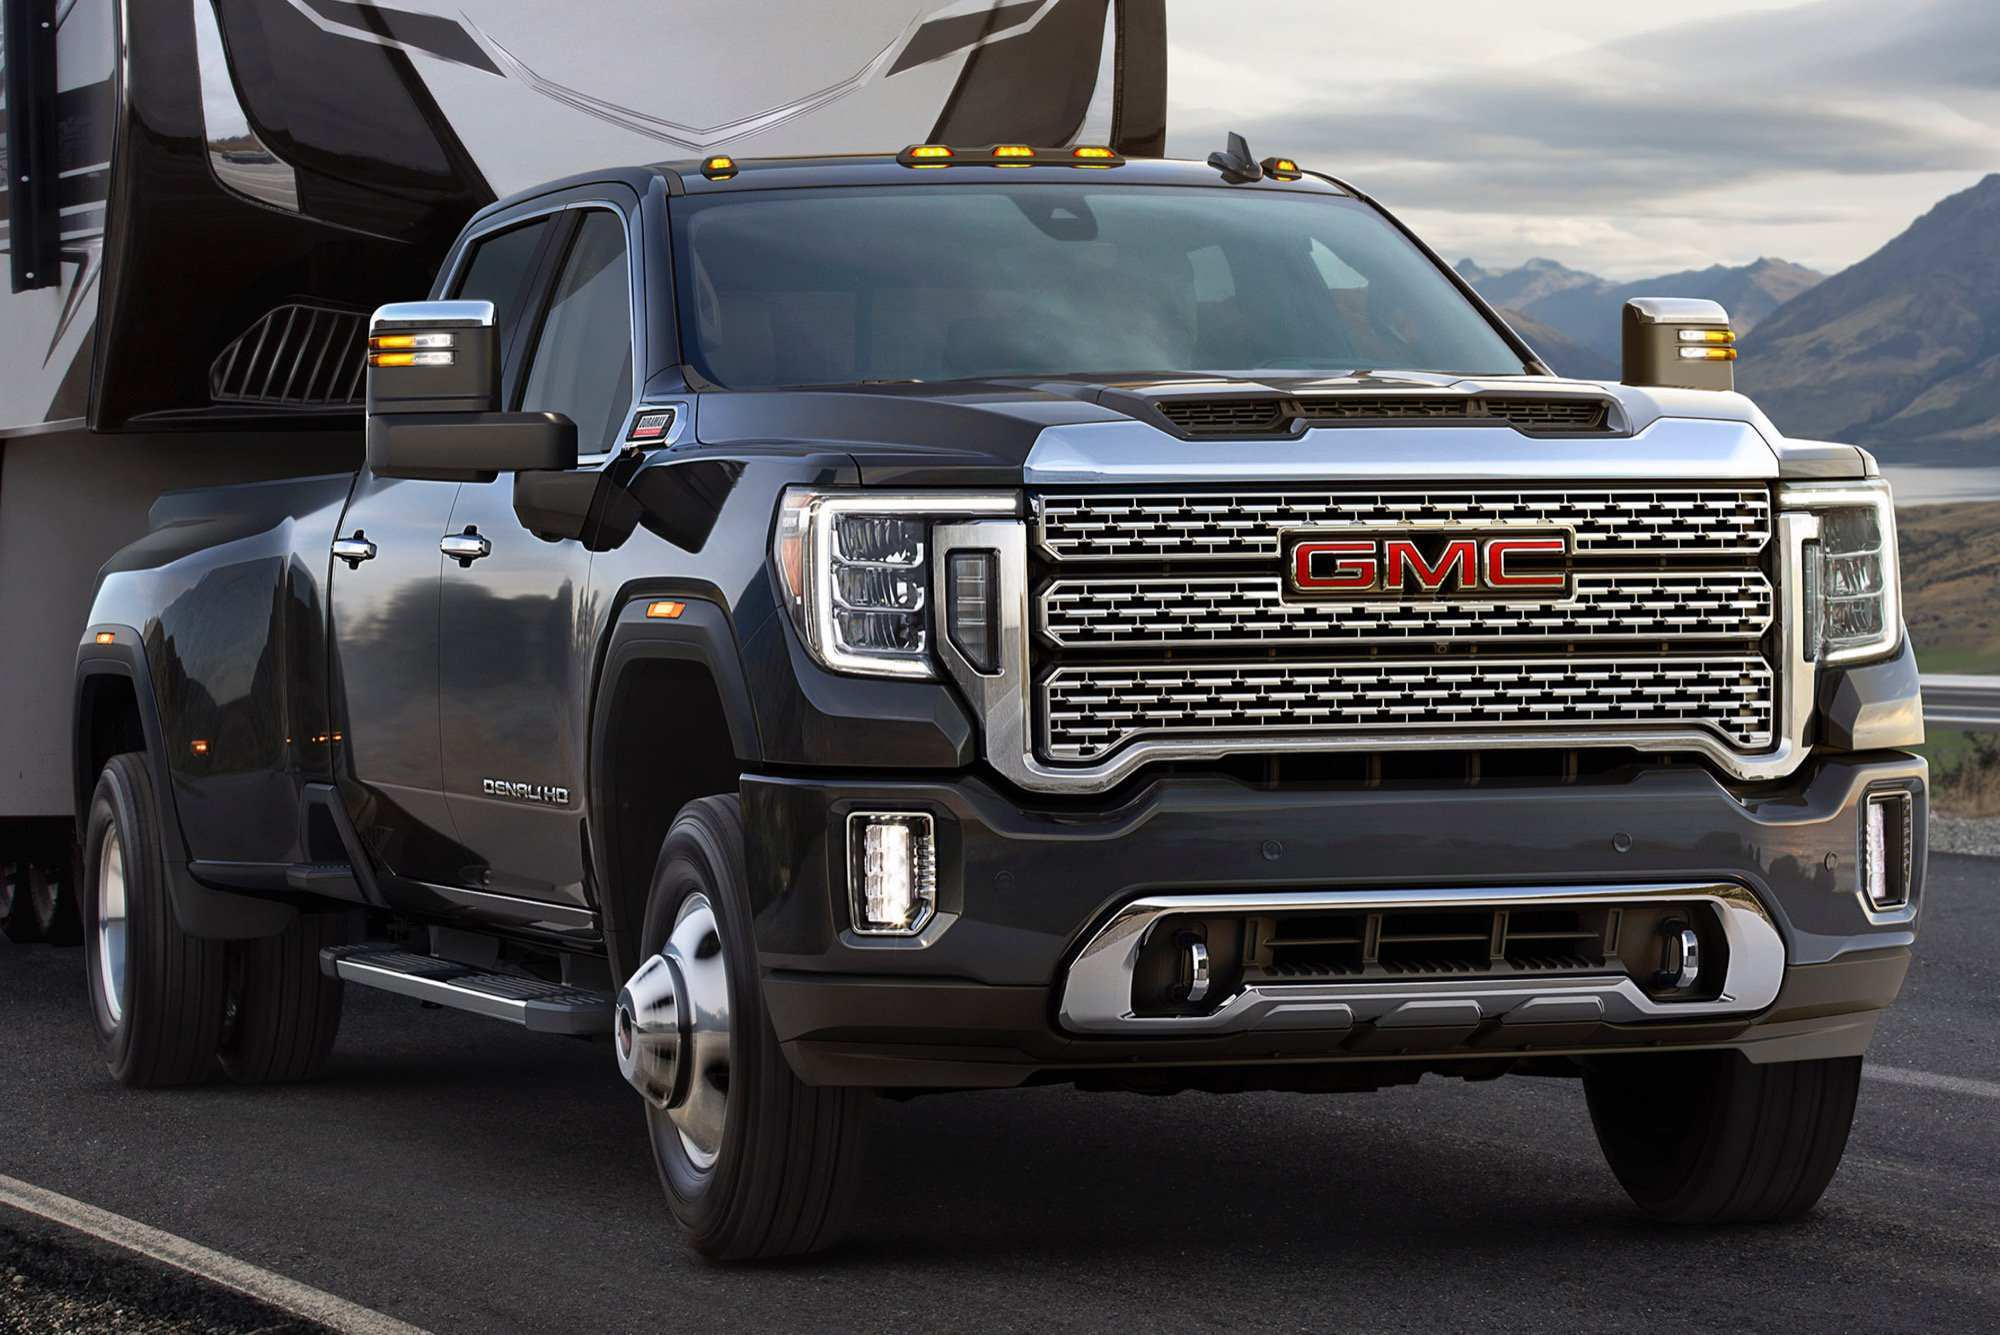 82 Best Review 2020 Gmc Denali Reviews by 2020 Gmc Denali